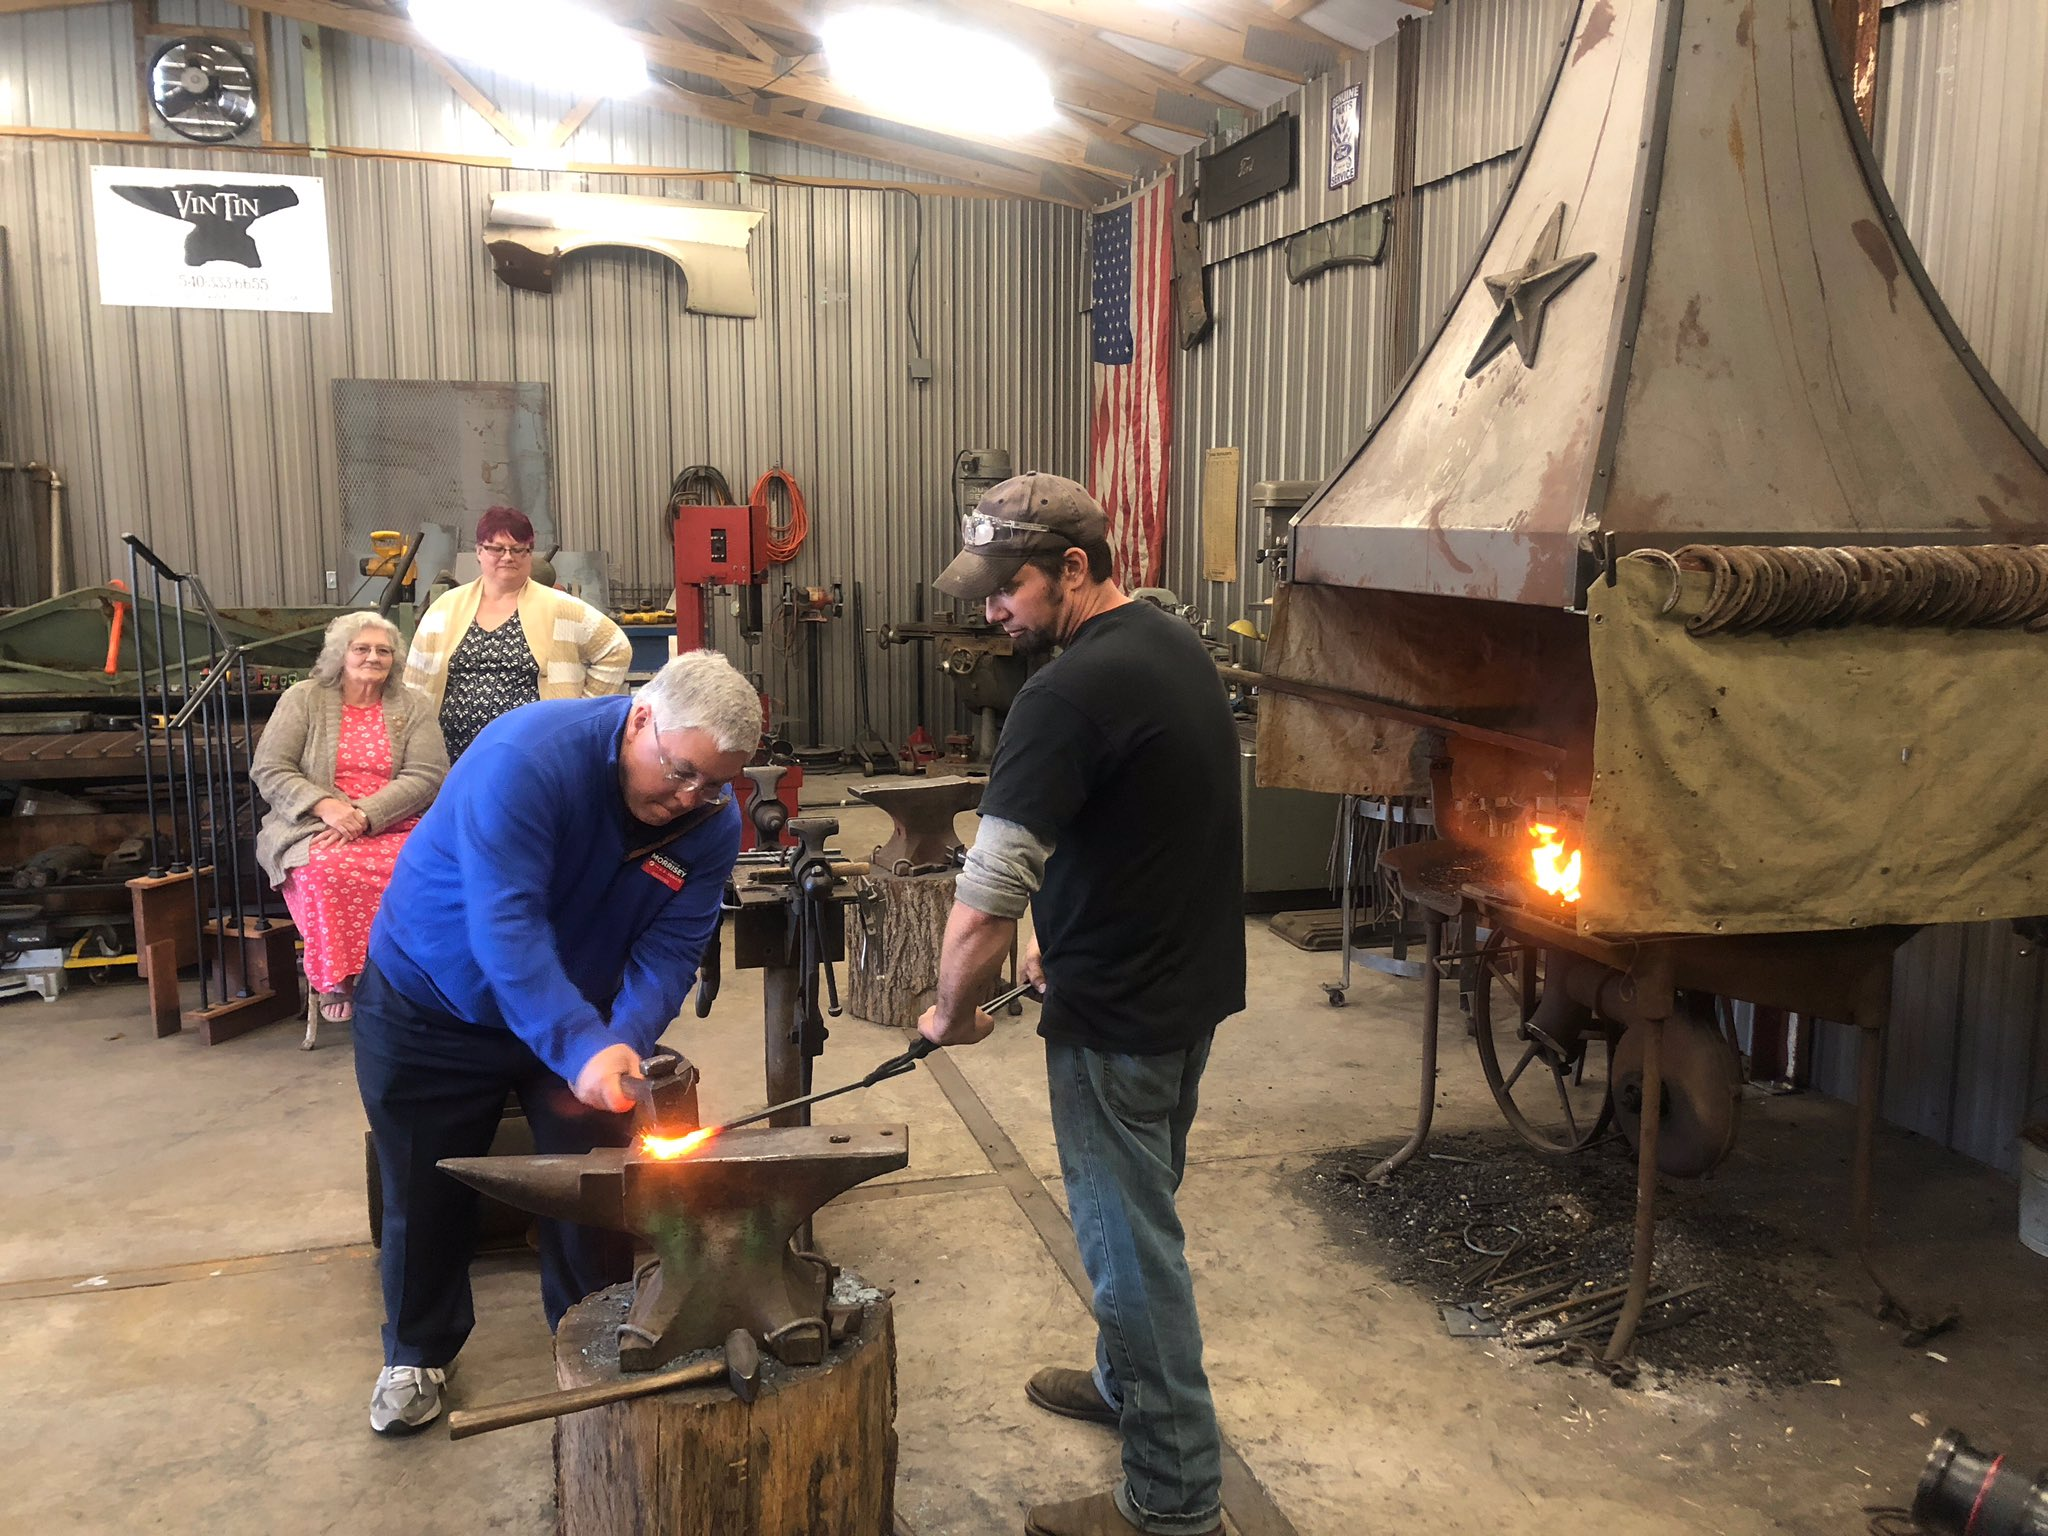 Stopped by VinTin Welding in Falling Waters to see the blacksmith in action! We're working Berkeley and Jefferson counties hard today before we head back to Beckley and the southern coalfields in a few hours. #wvsen https://t.co/eRtet9IhL8